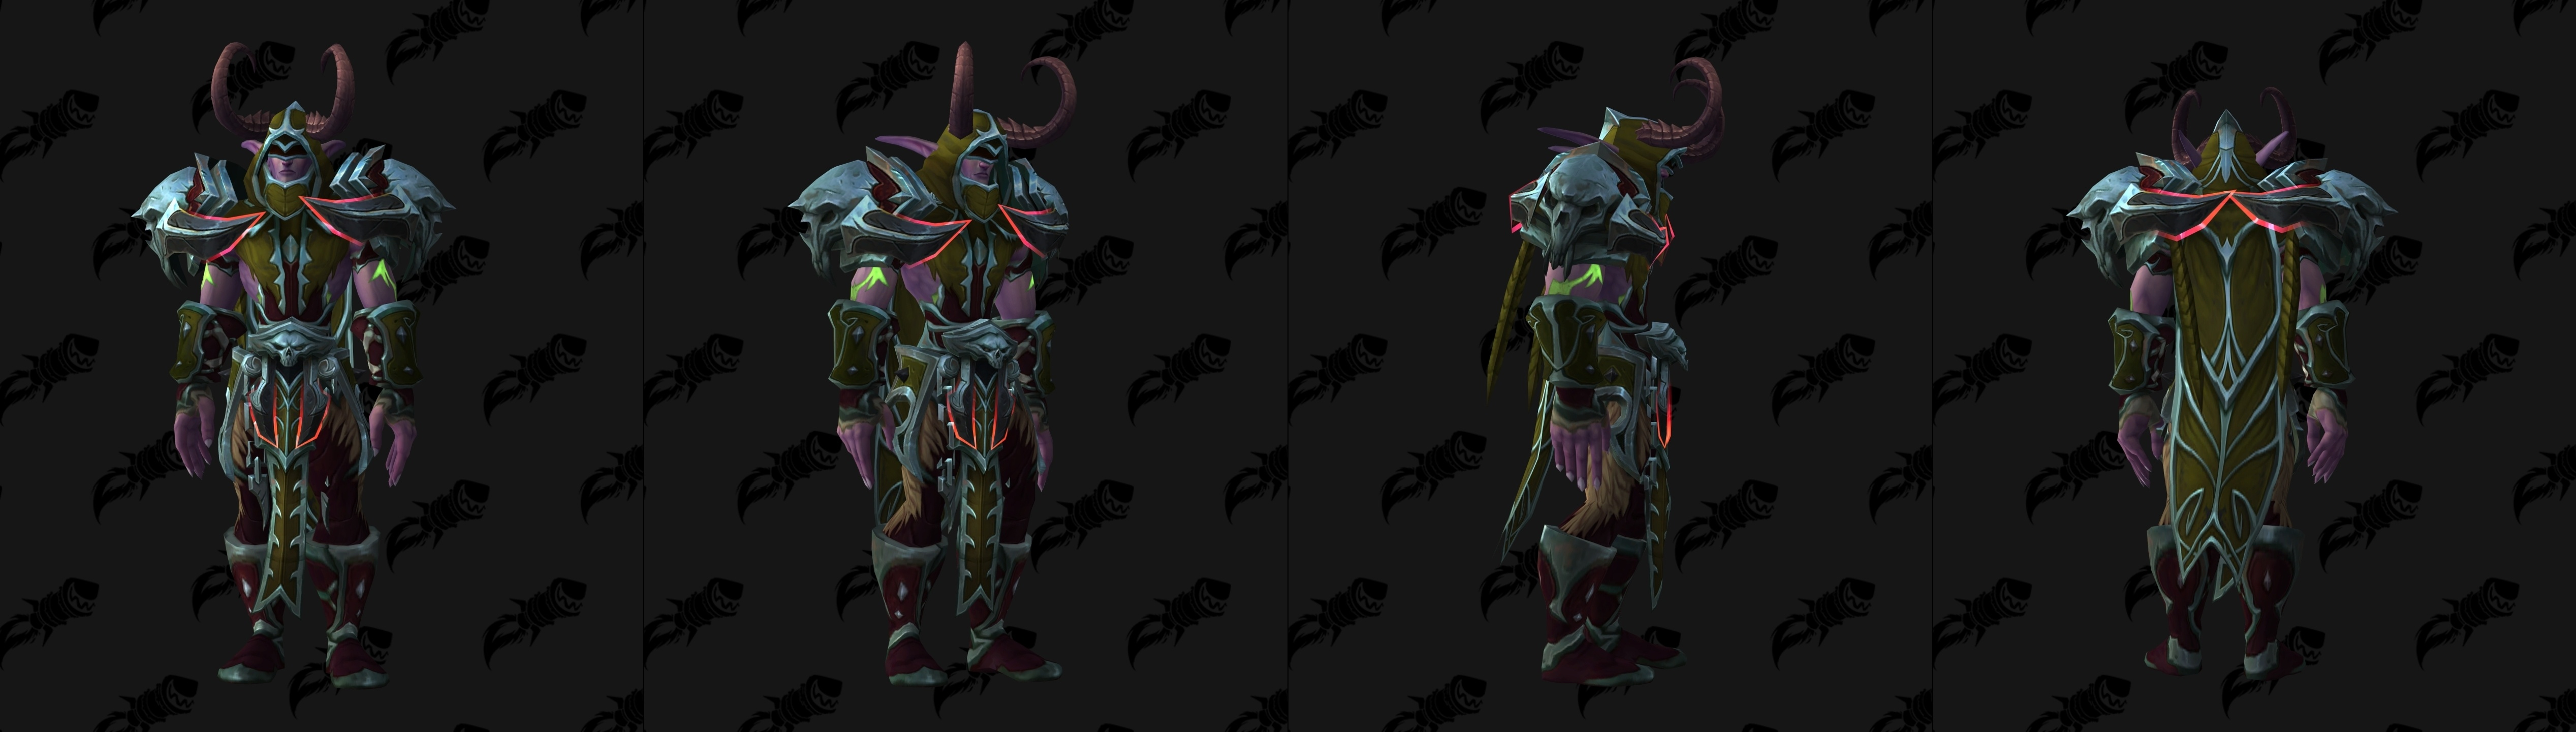 Tier 21 Armor Sets - Guides - Wowhead